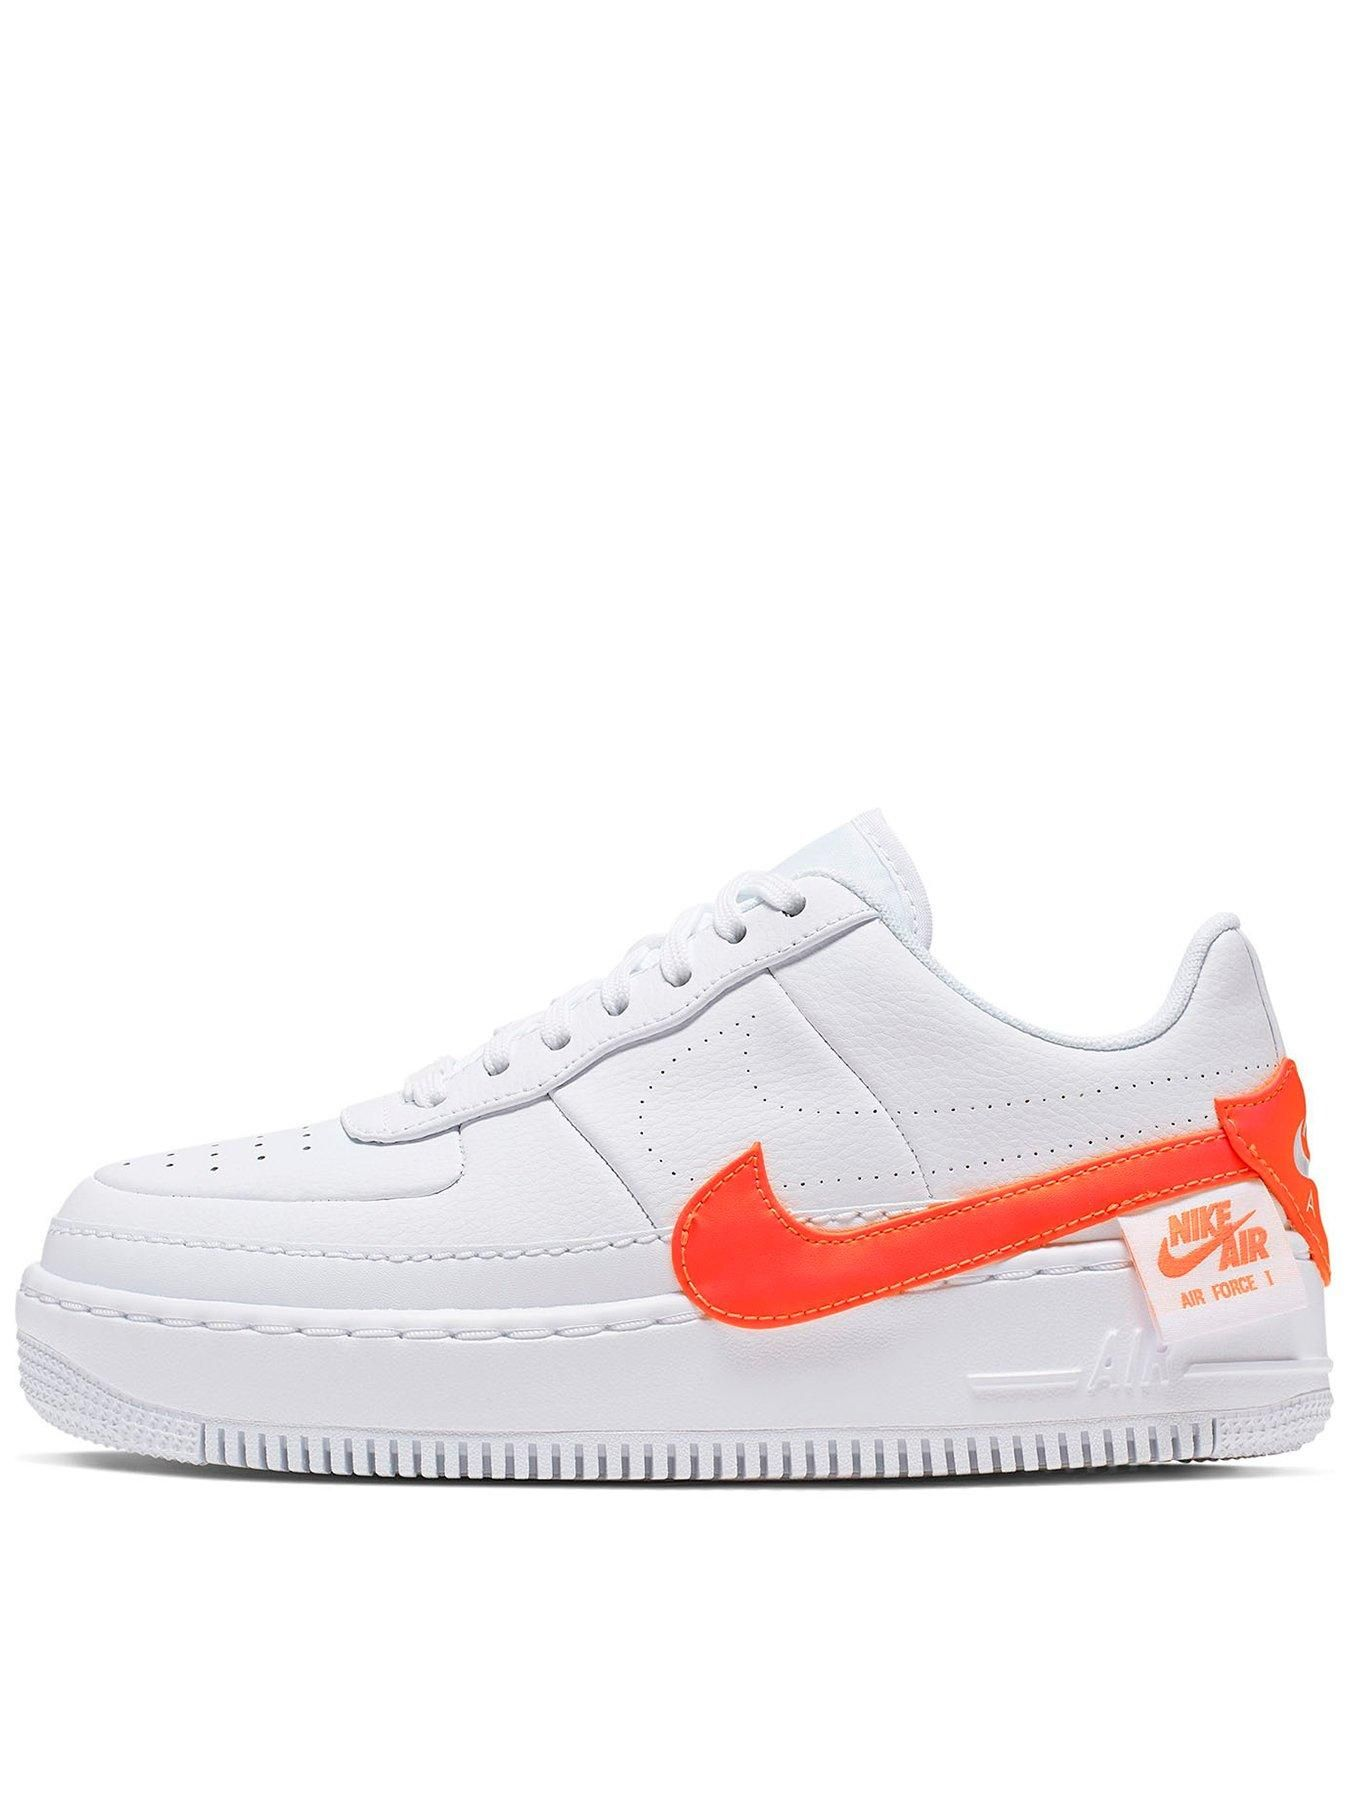 Nike Air Force 1 Jester WhiteOrange , WhiteCrimson, Size